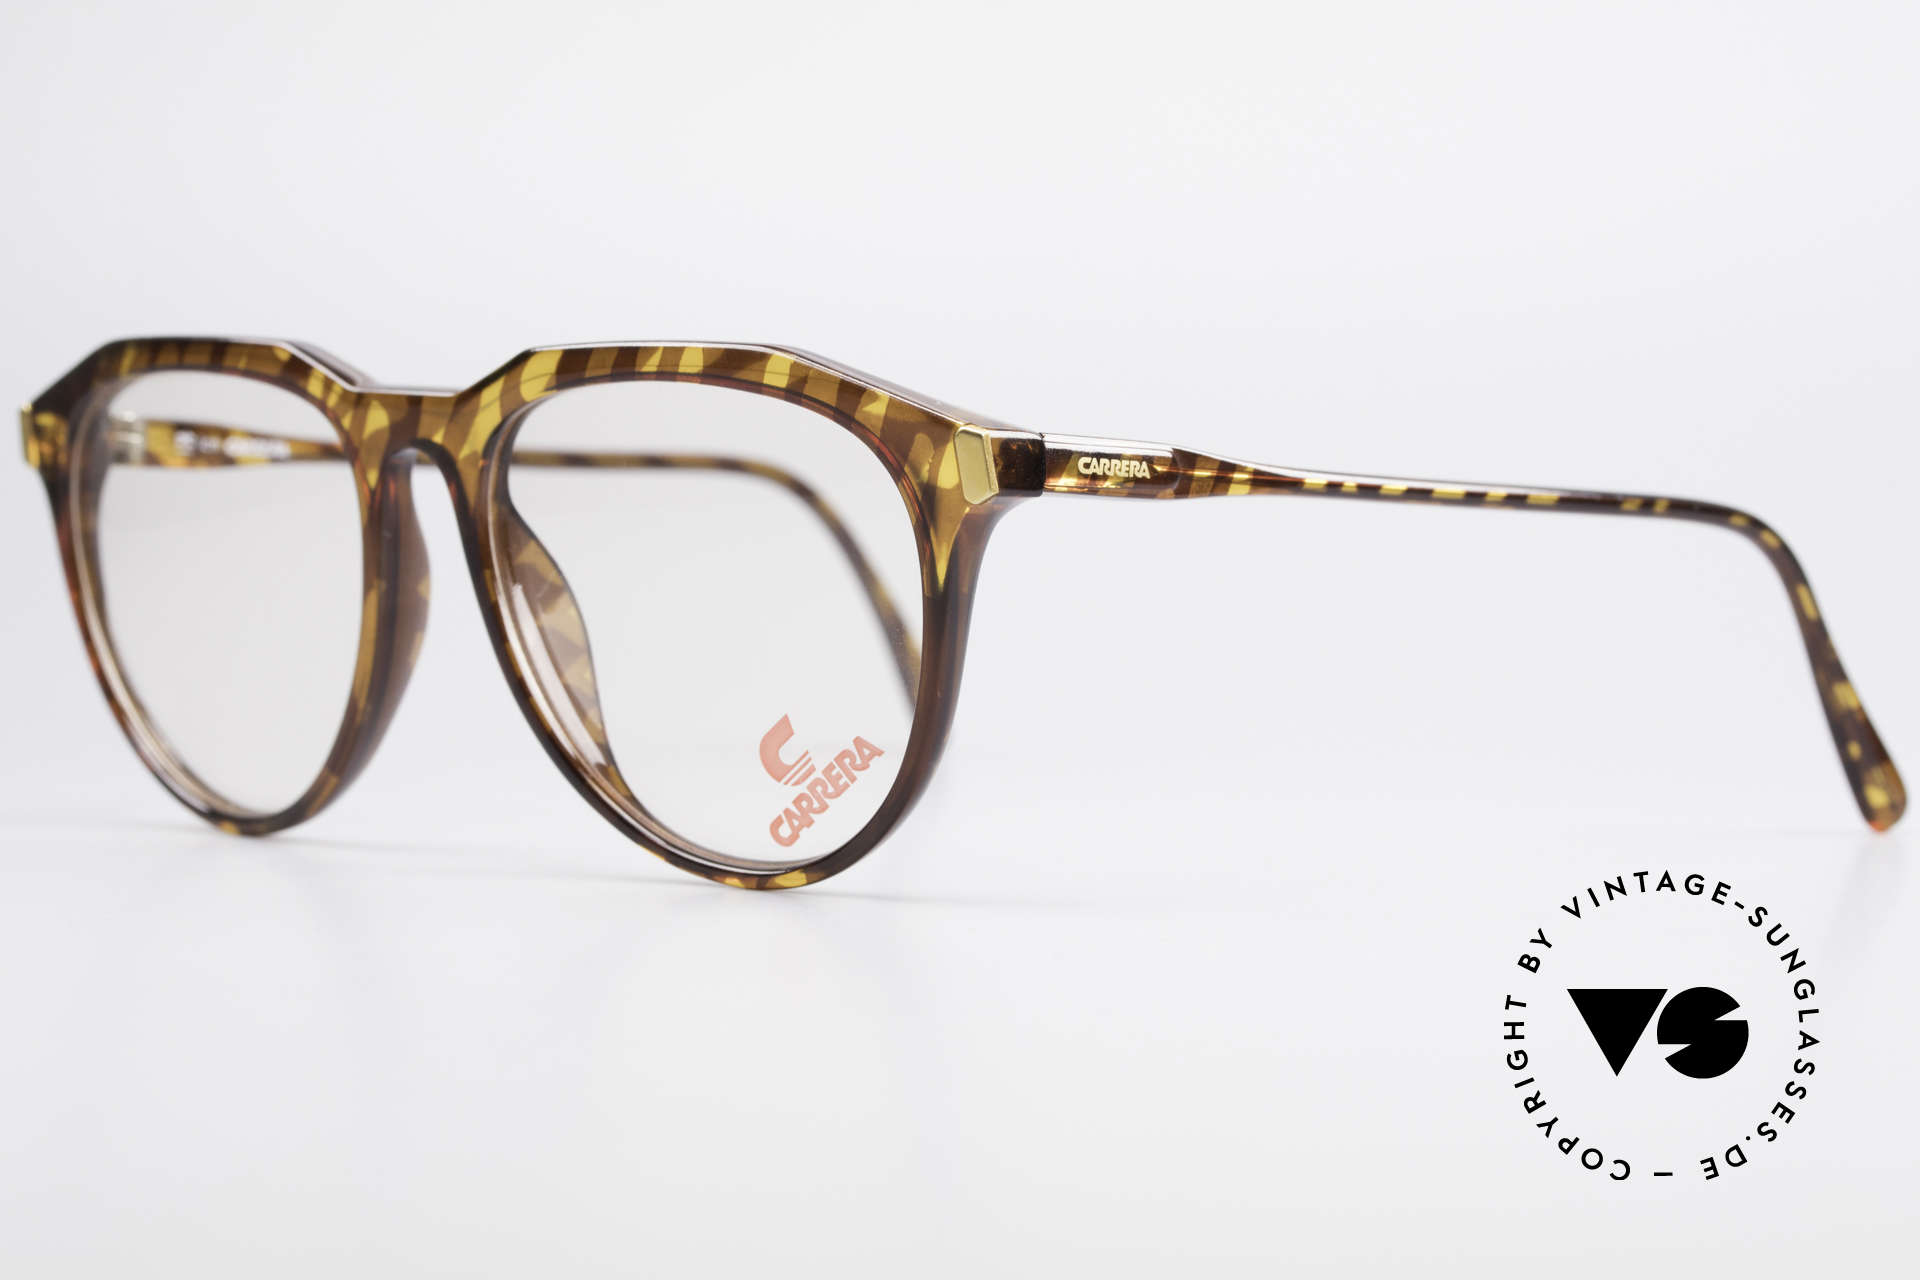 Carrera 5361 90's Optyl Eyeglasses Panto, lightweight & thus accordingly pleasant to wear, Made for Men